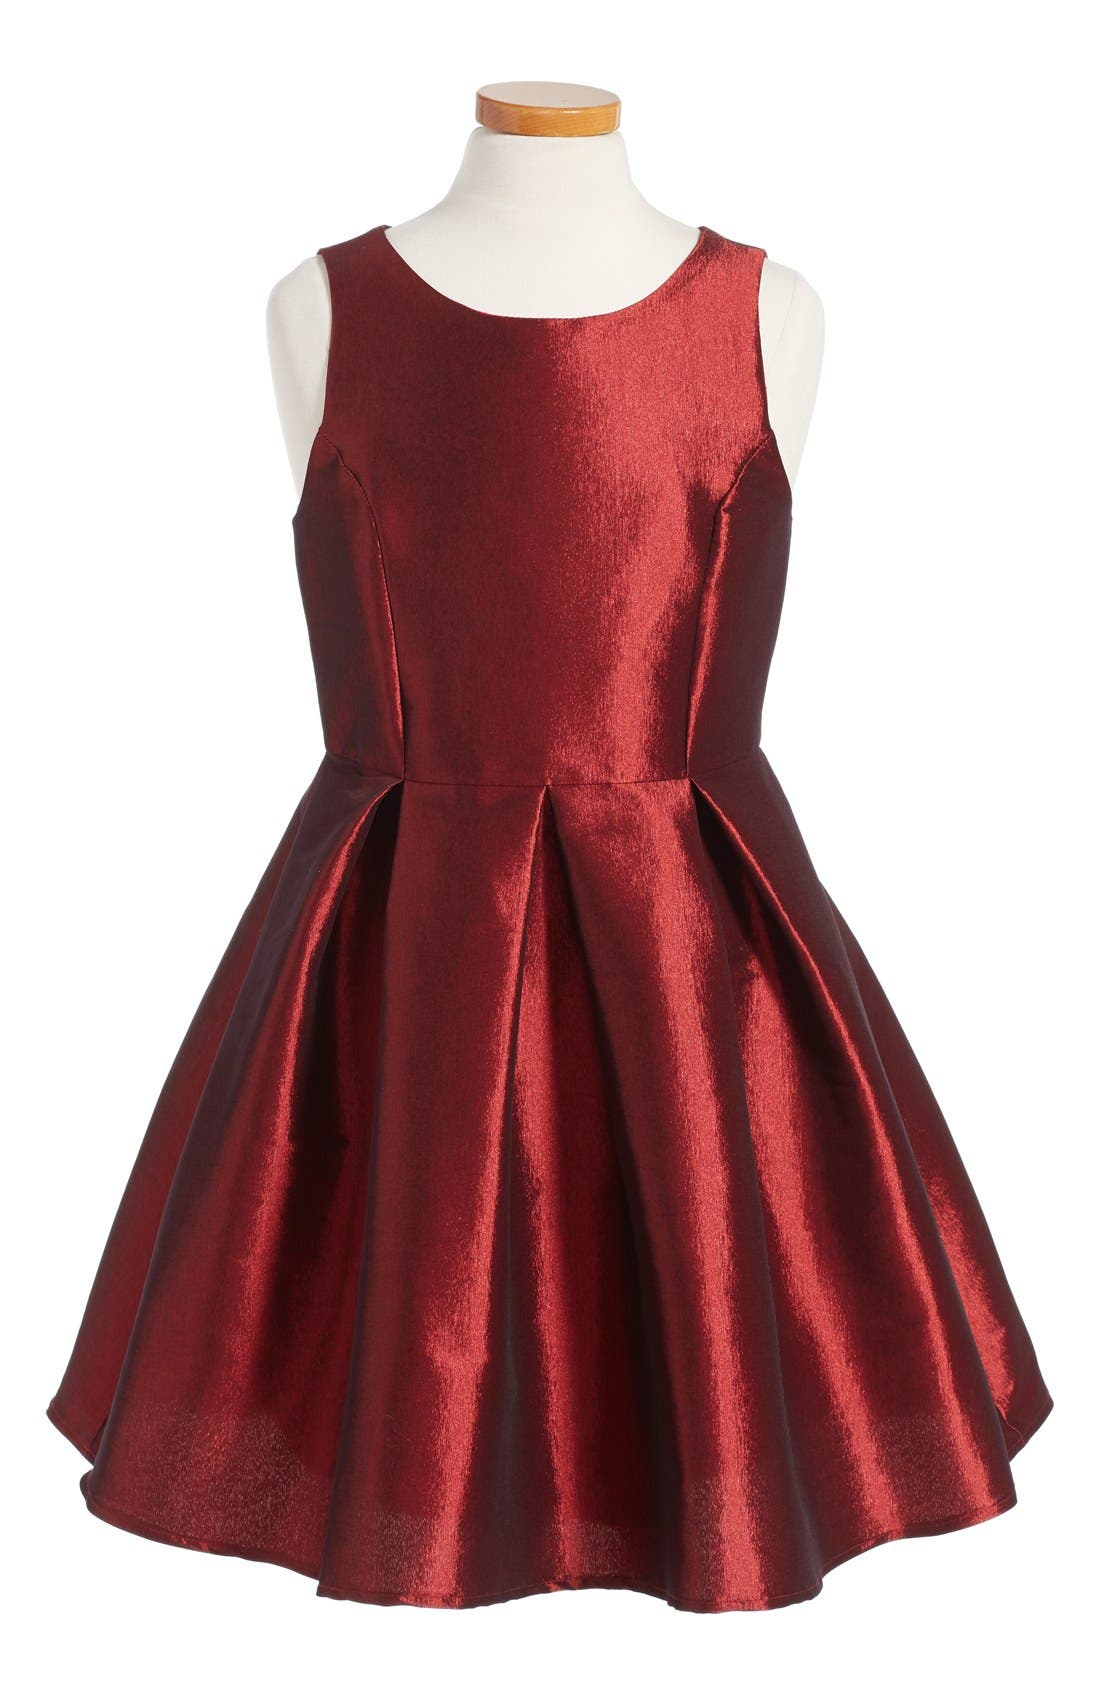 Soprano Sleeveless Skater Dress (Big Girls)